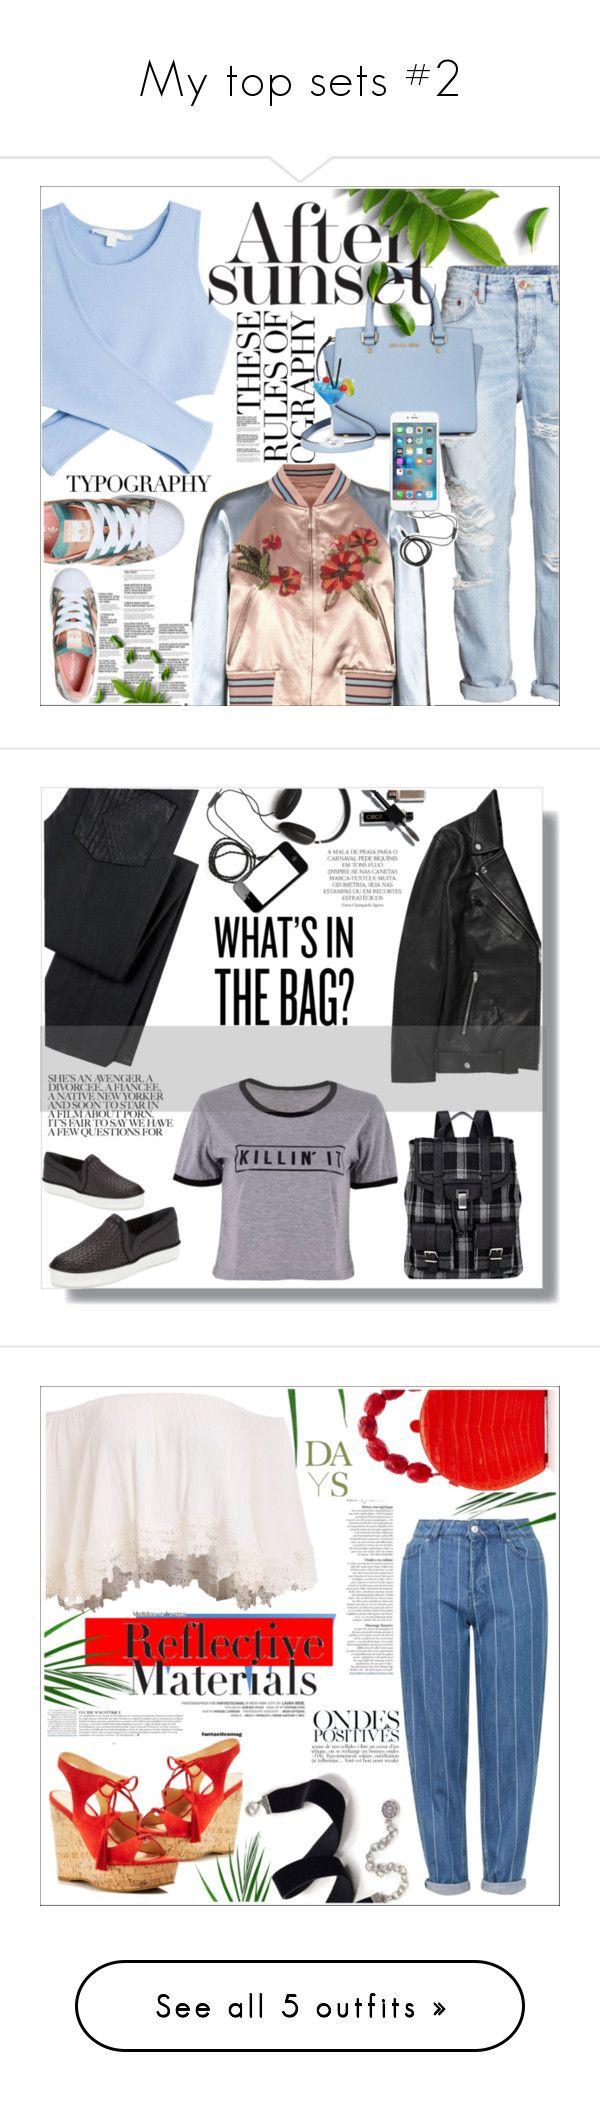 """""""My top sets #2"""" by olx-kz ❤ liked on Polyvore featuring Valentino, Jonathan Simkhai, H&M, Molami, Michael Kors, adidas, K Karl Lagerfeld, T By Alexander Wang, Stuart Weitzman and Proenza Schouler"""